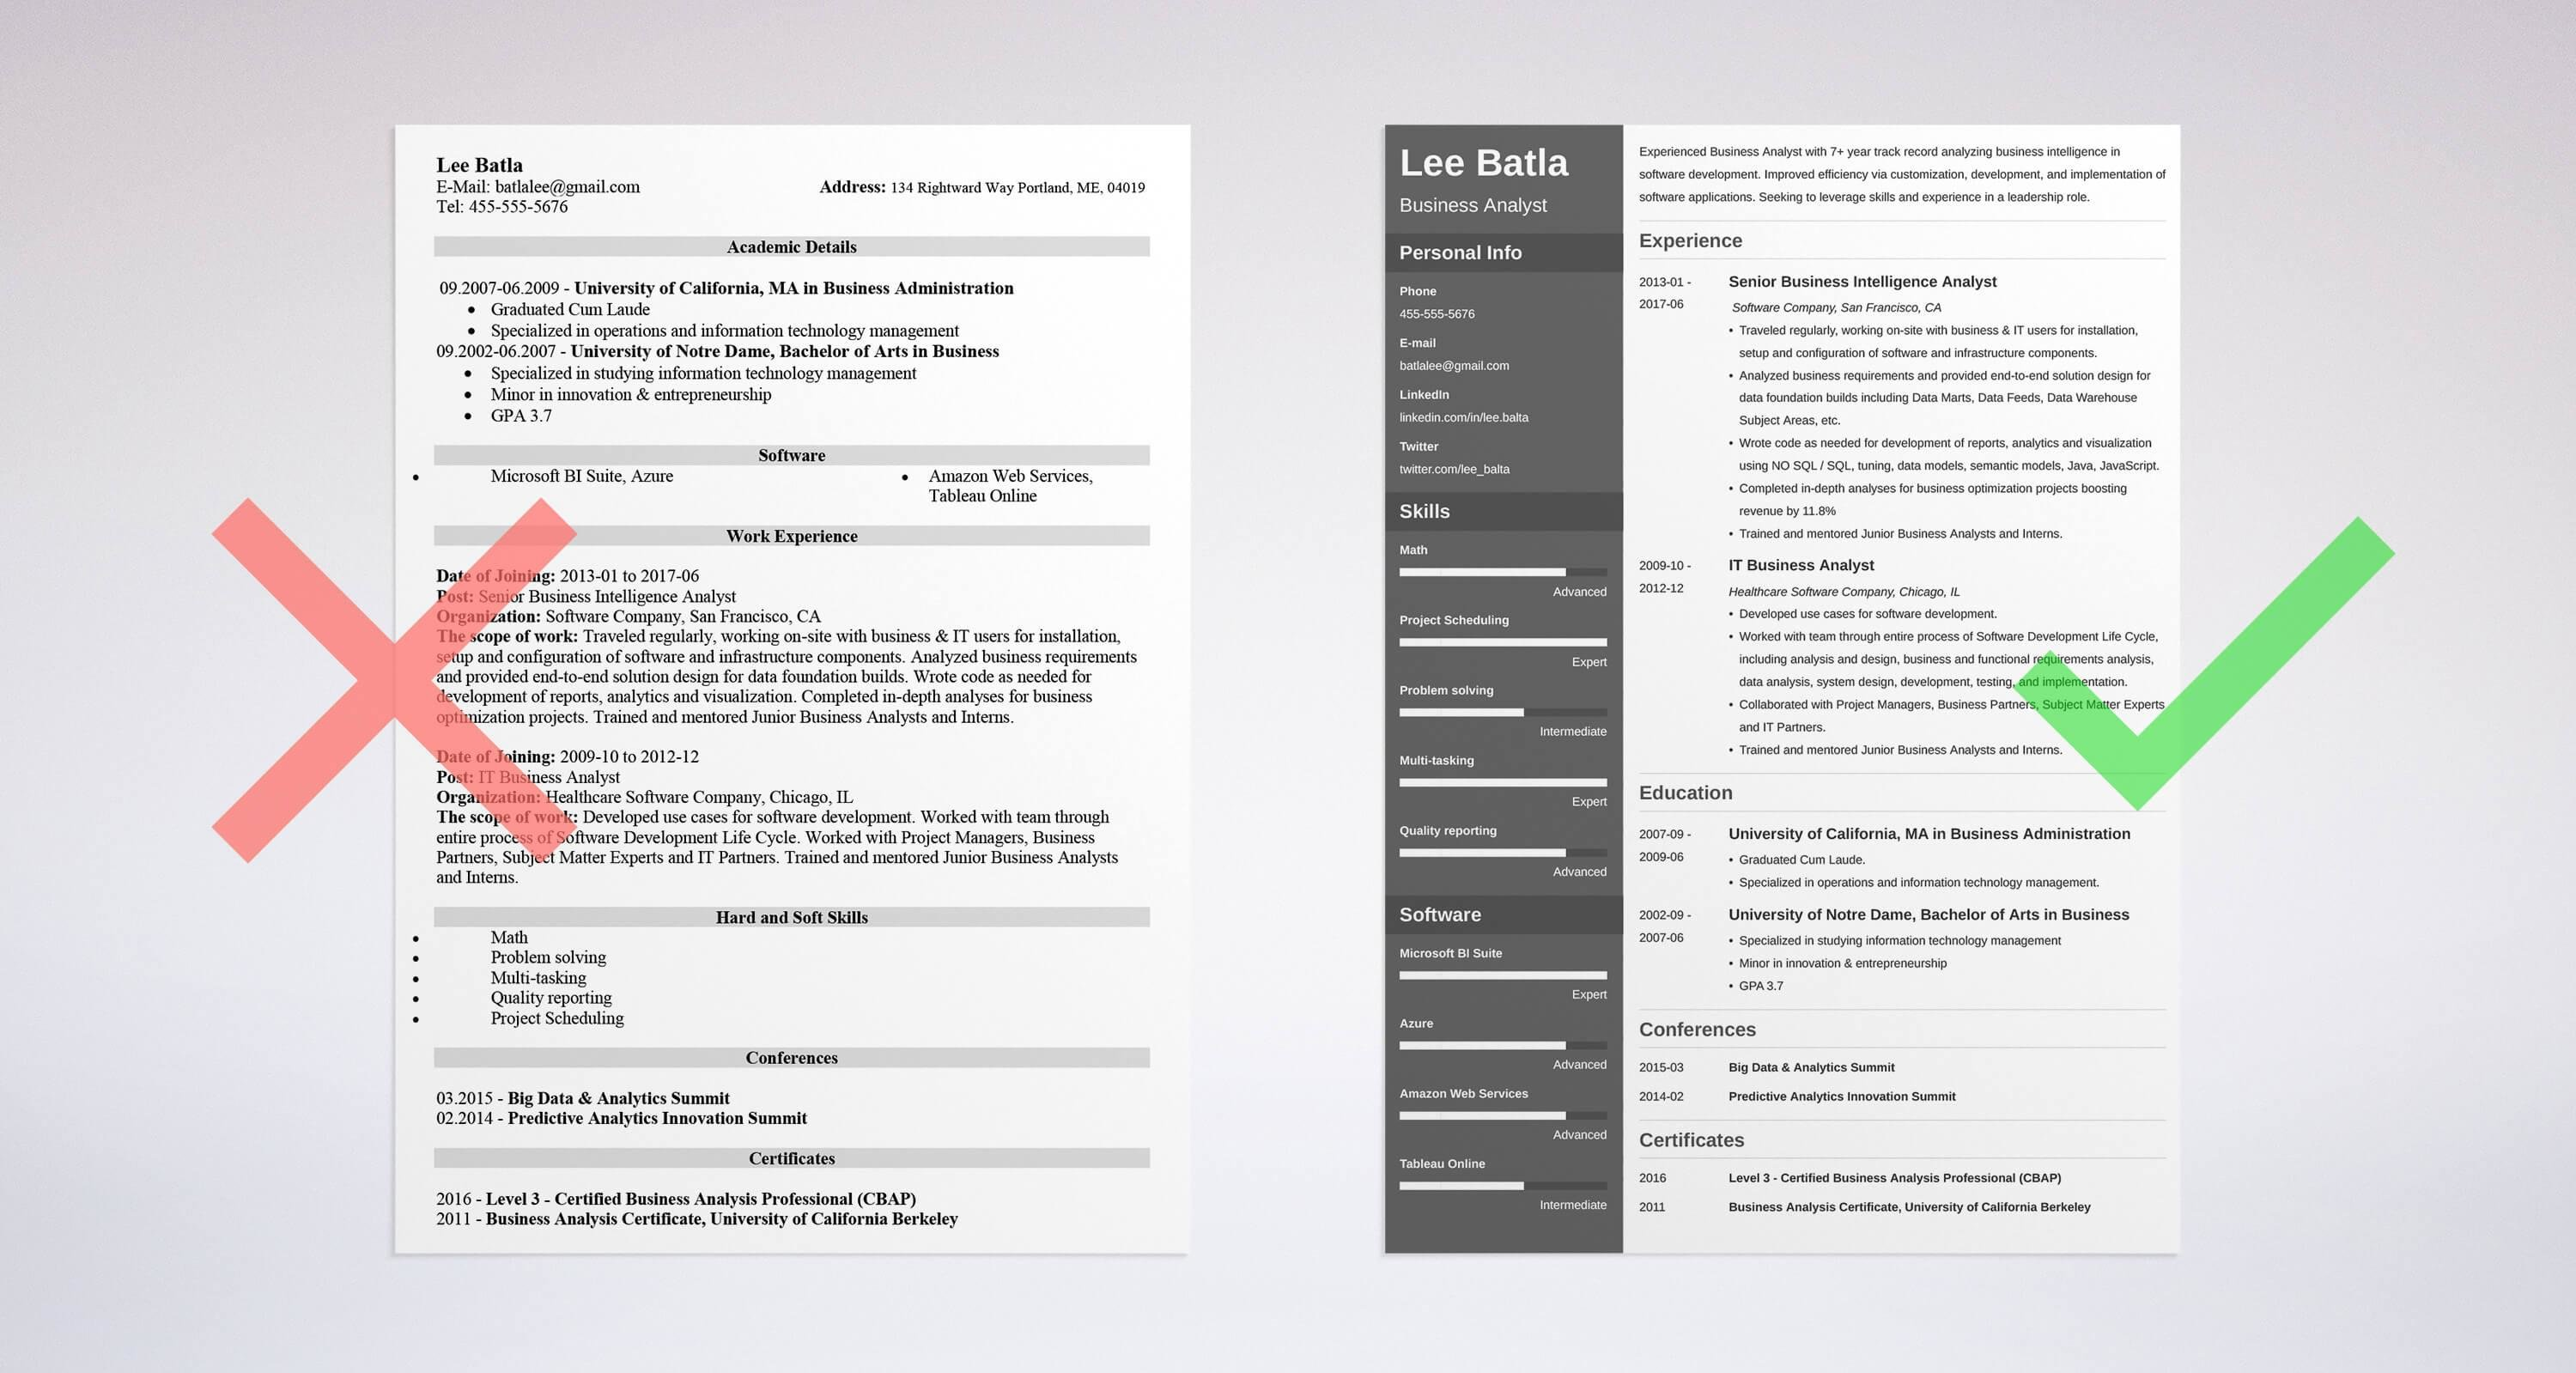 Business Analyst Resume: Sample & Complete Guide [+20 Examples]